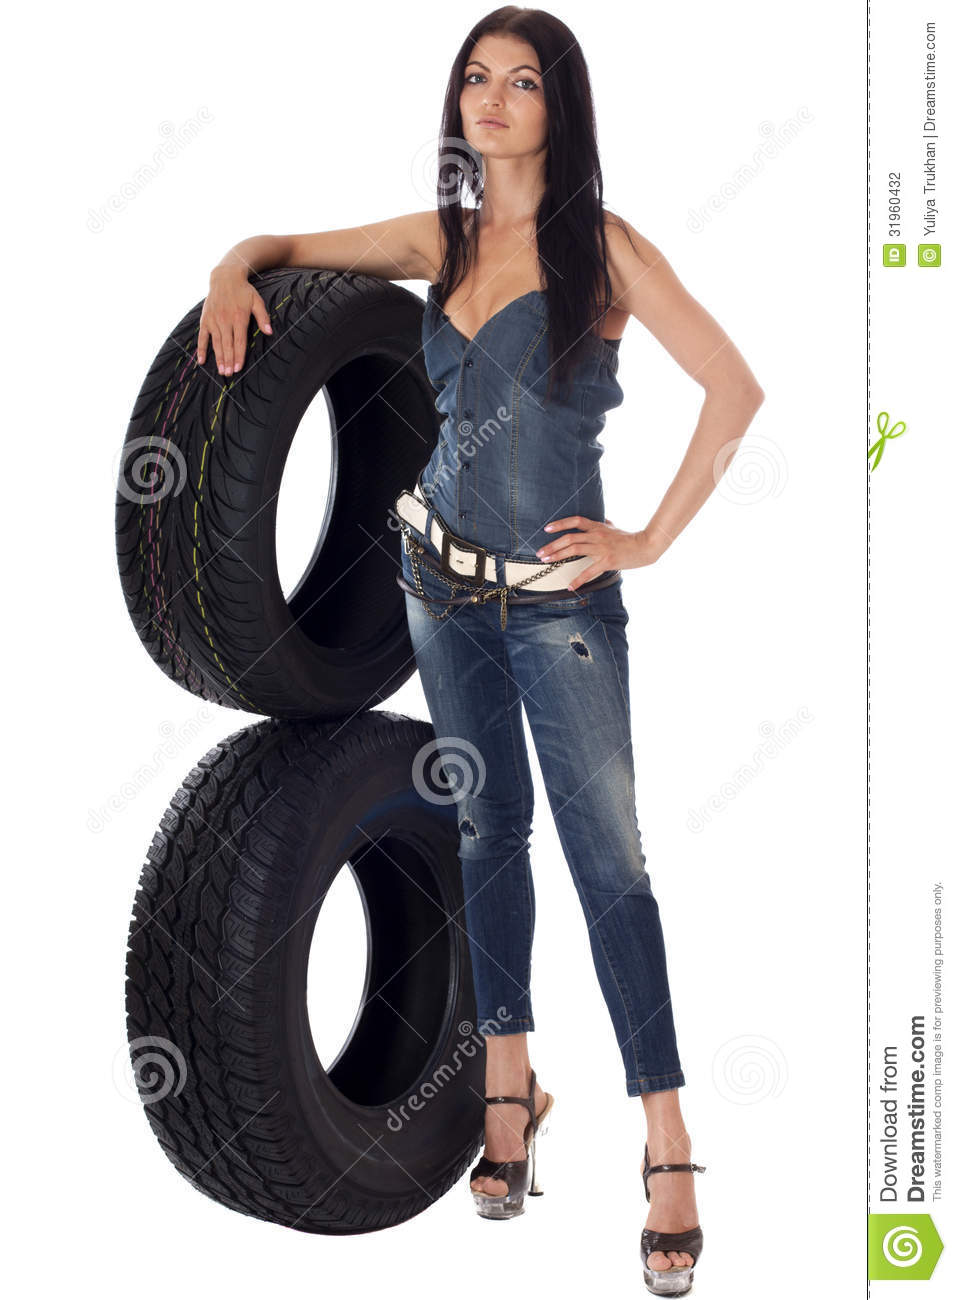 tyres women How wide are your tyres it's likely you're riding whatever width tyres your bike was sold with, and the type of bike you're riding largely defines tyre width.